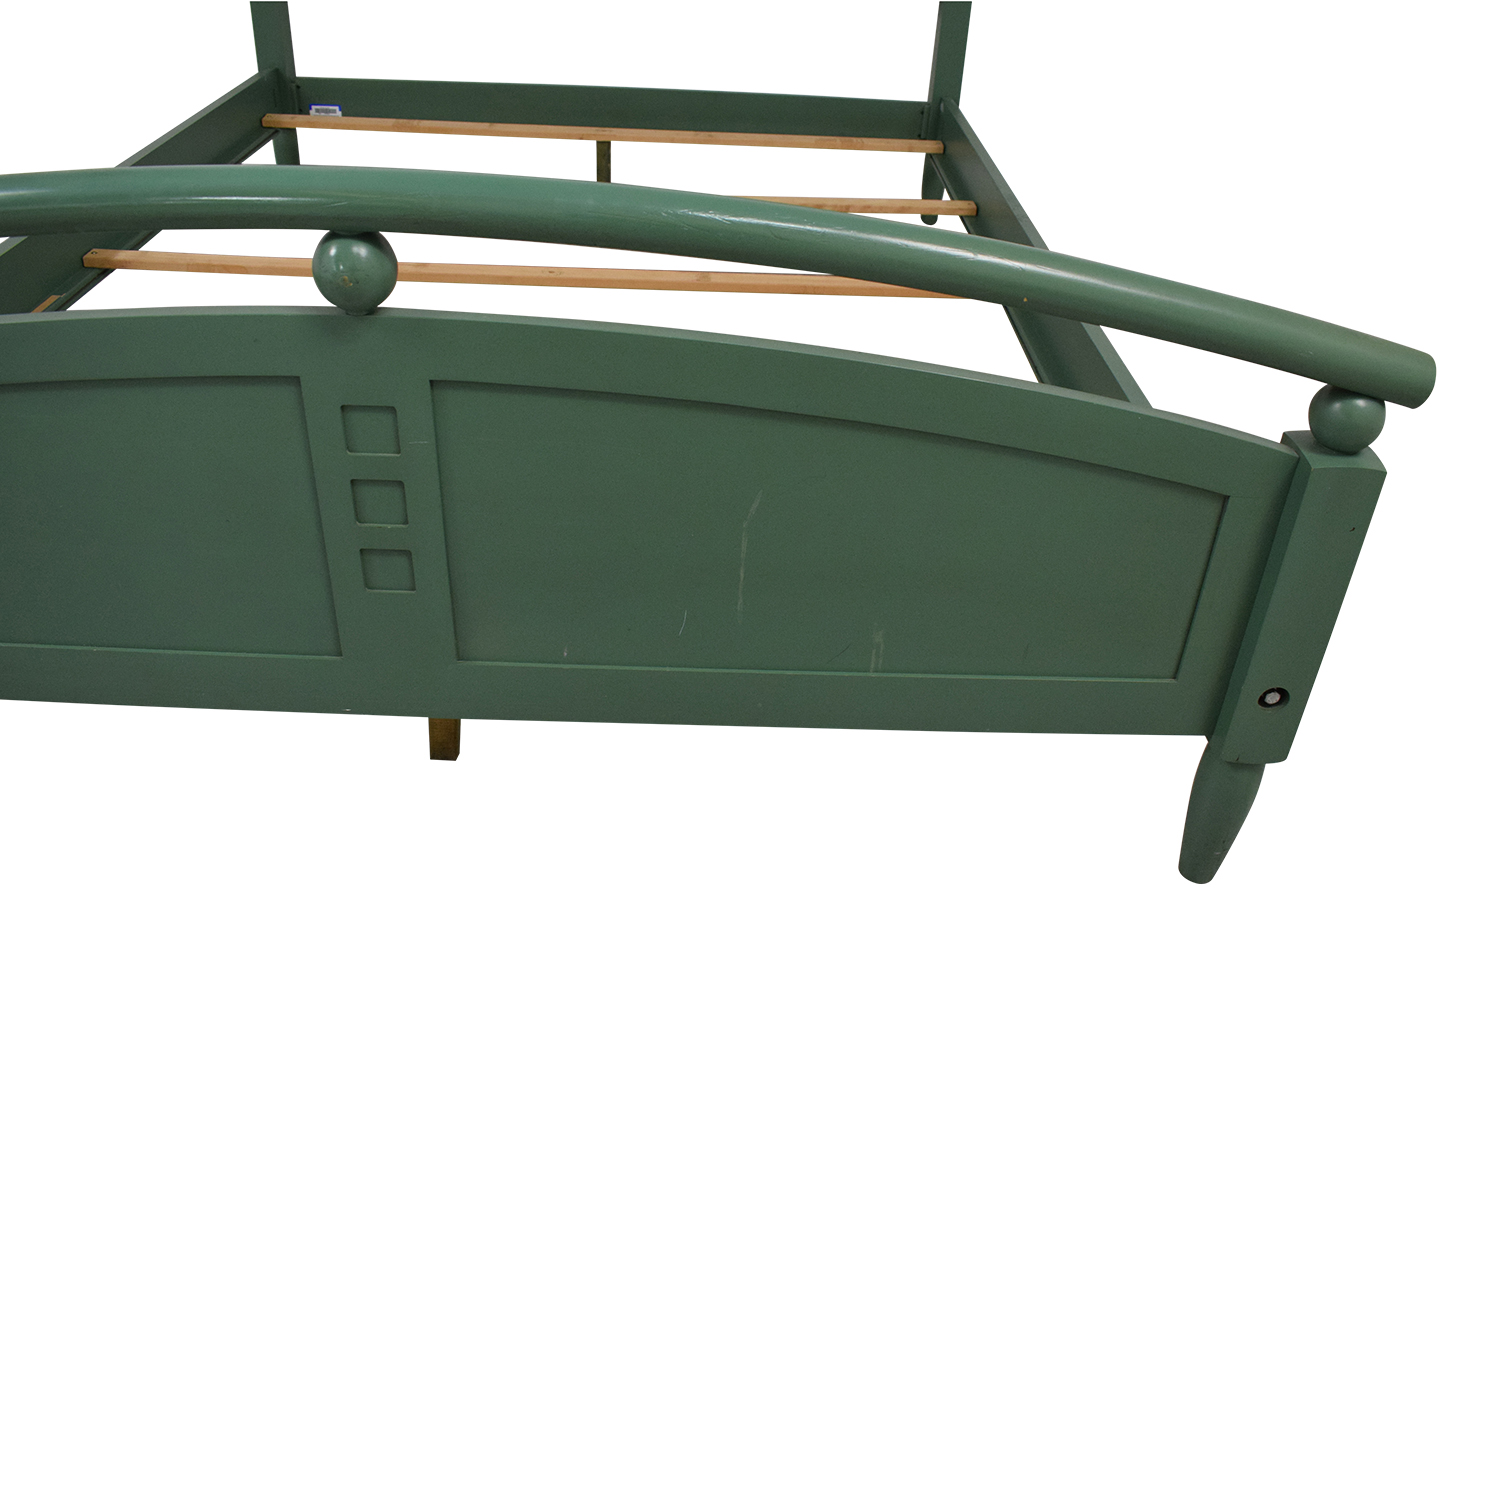 Ethan Allen Ethan Allen American Dimensions Double Arched Queen Bed dimensions